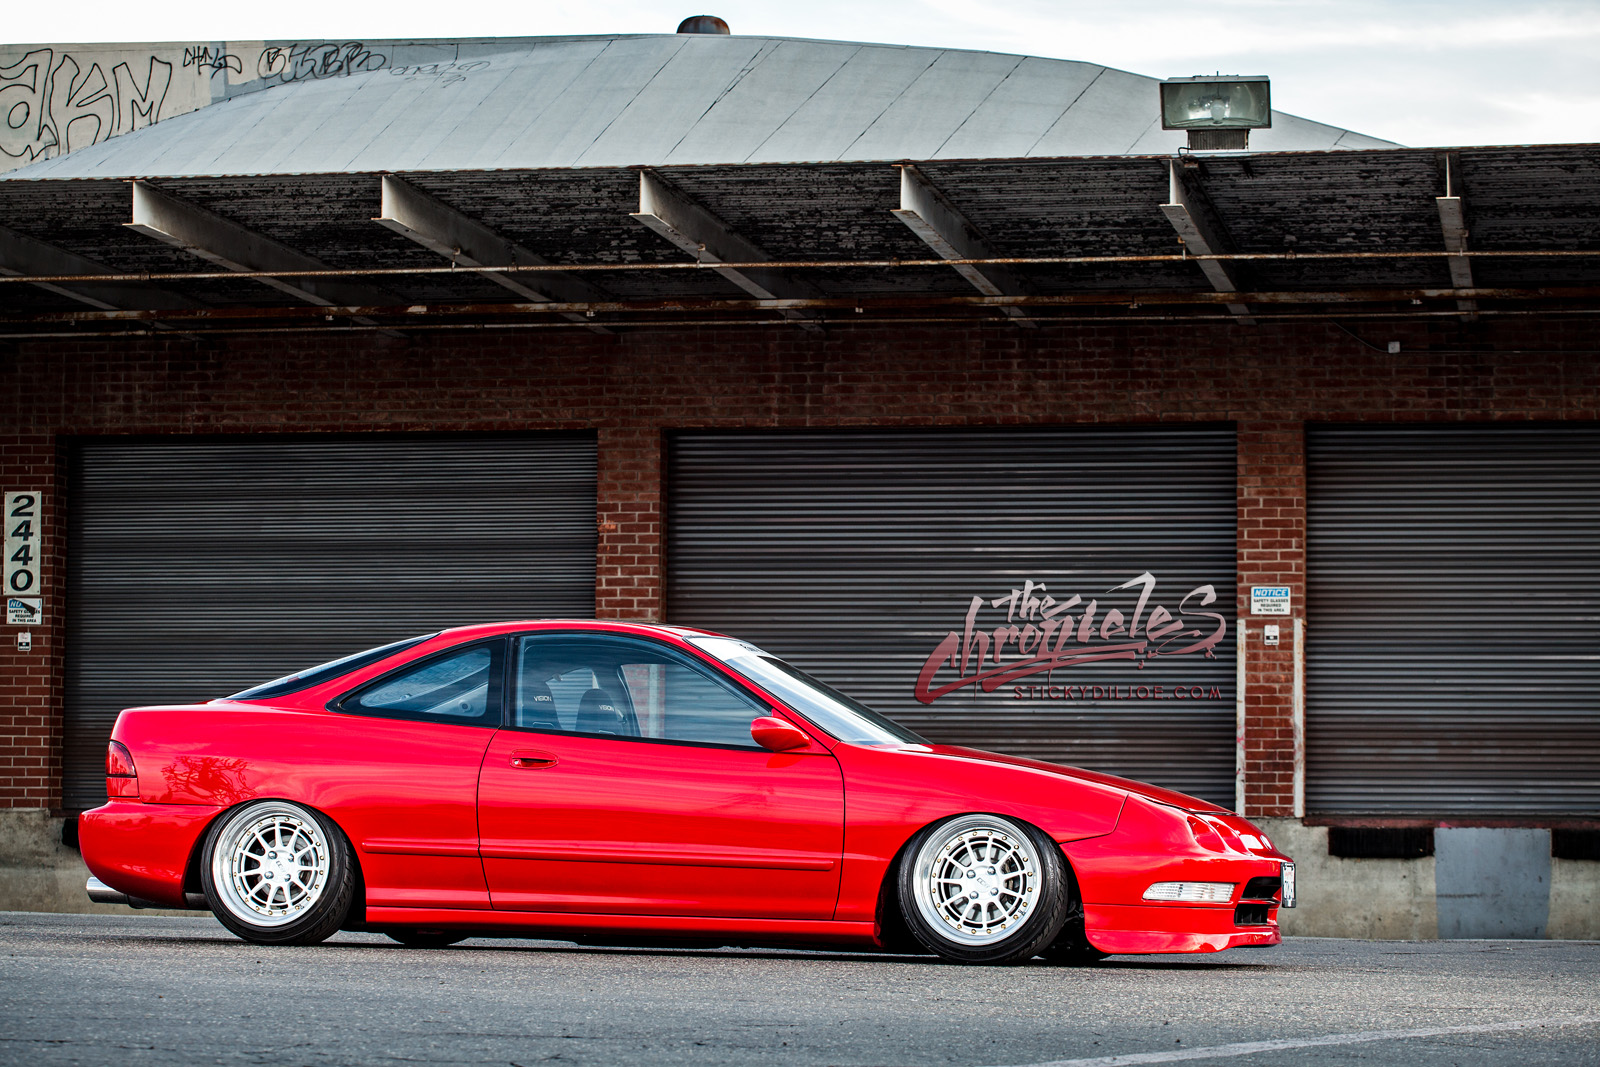 Exclusive Content: Unpublished Photos of Mikey Cristi's Integra from 2015 SS Honda Issue…